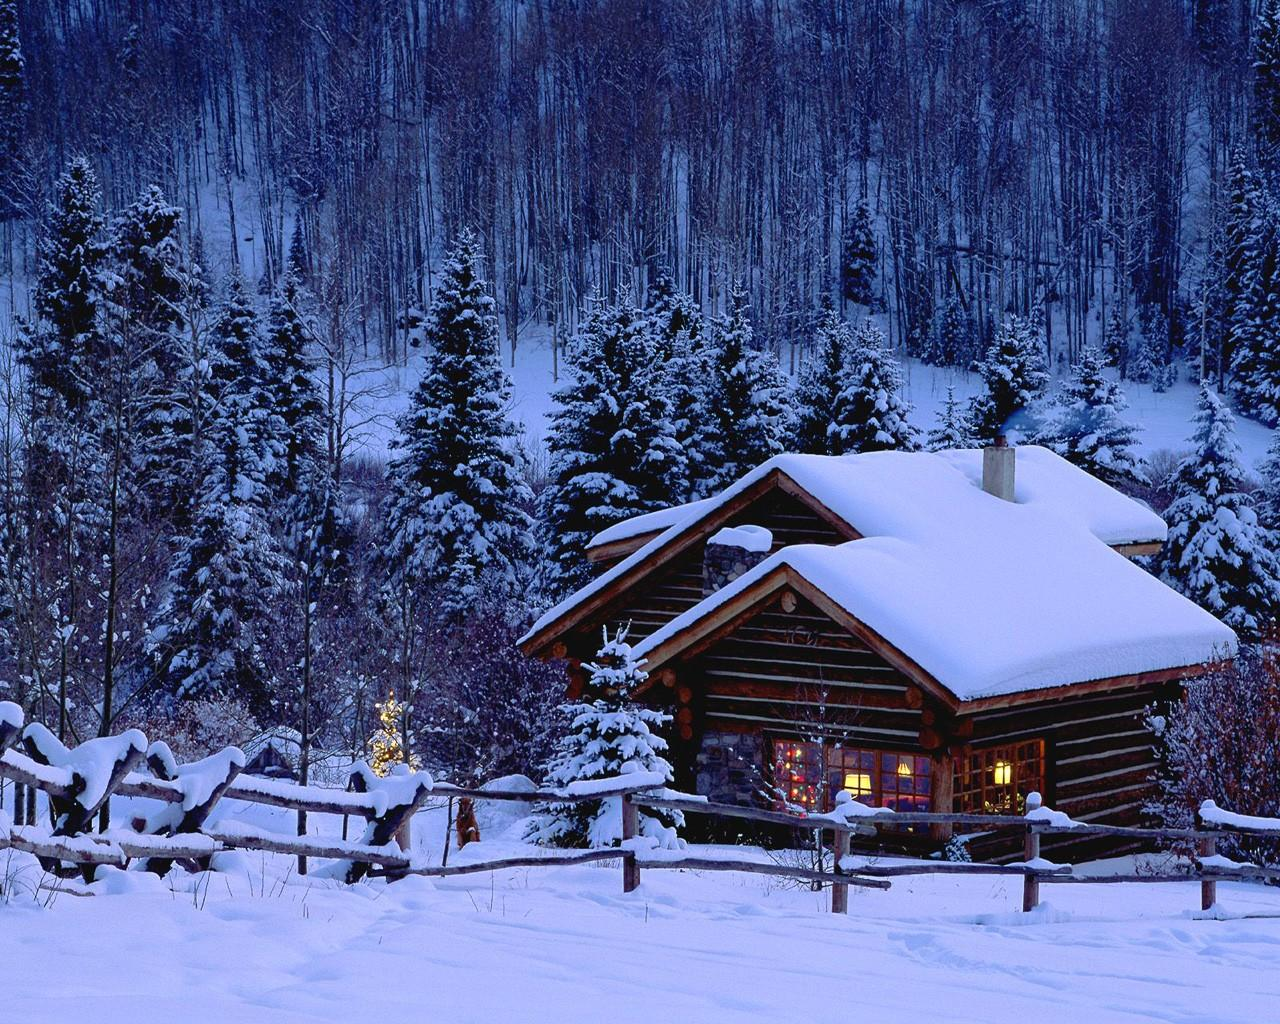 http://4.bp.blogspot.com/-7xB6FN-vw3g/TccOGZbj3WI/AAAAAAAACJA/Pj09HIH_0WM/s1600/Winter-Snow-House-1.jpeg